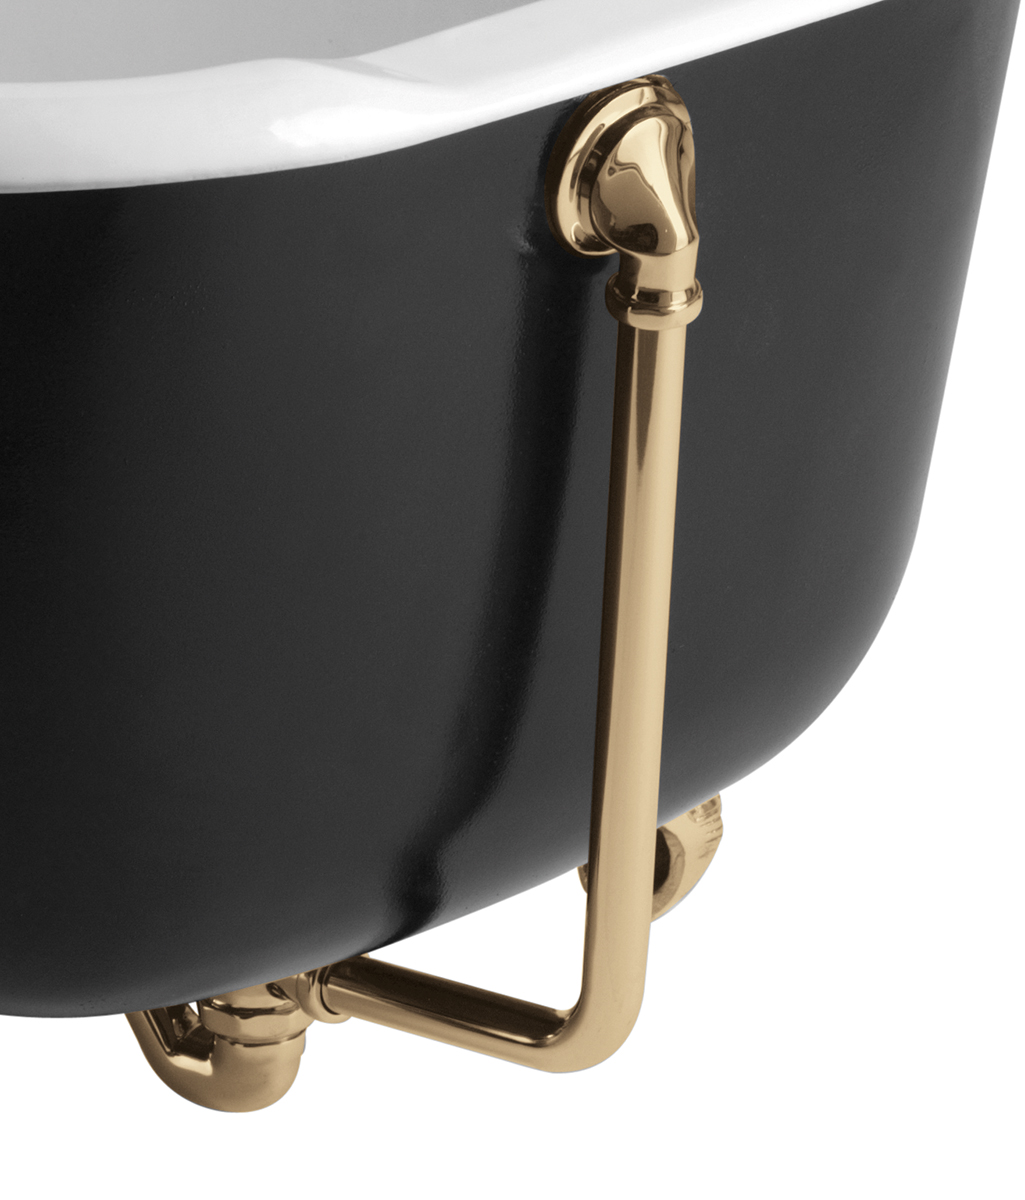 Bristan Traditional Exposed Bath Waste with Overflow - Gold